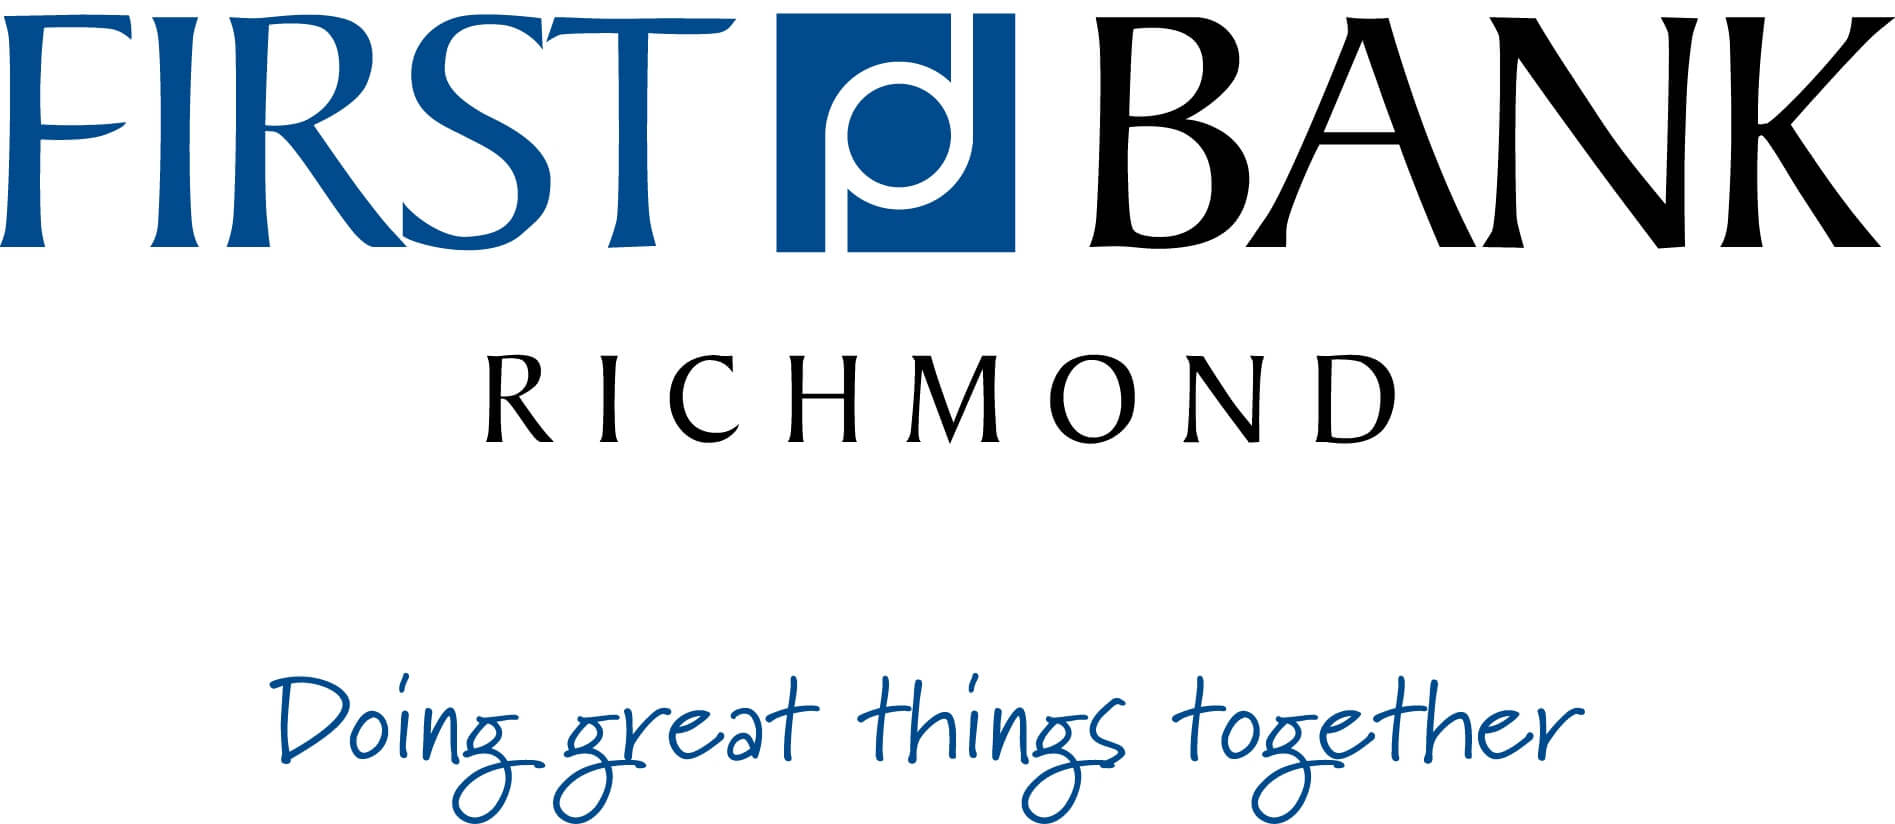 First Bank Richmond logo